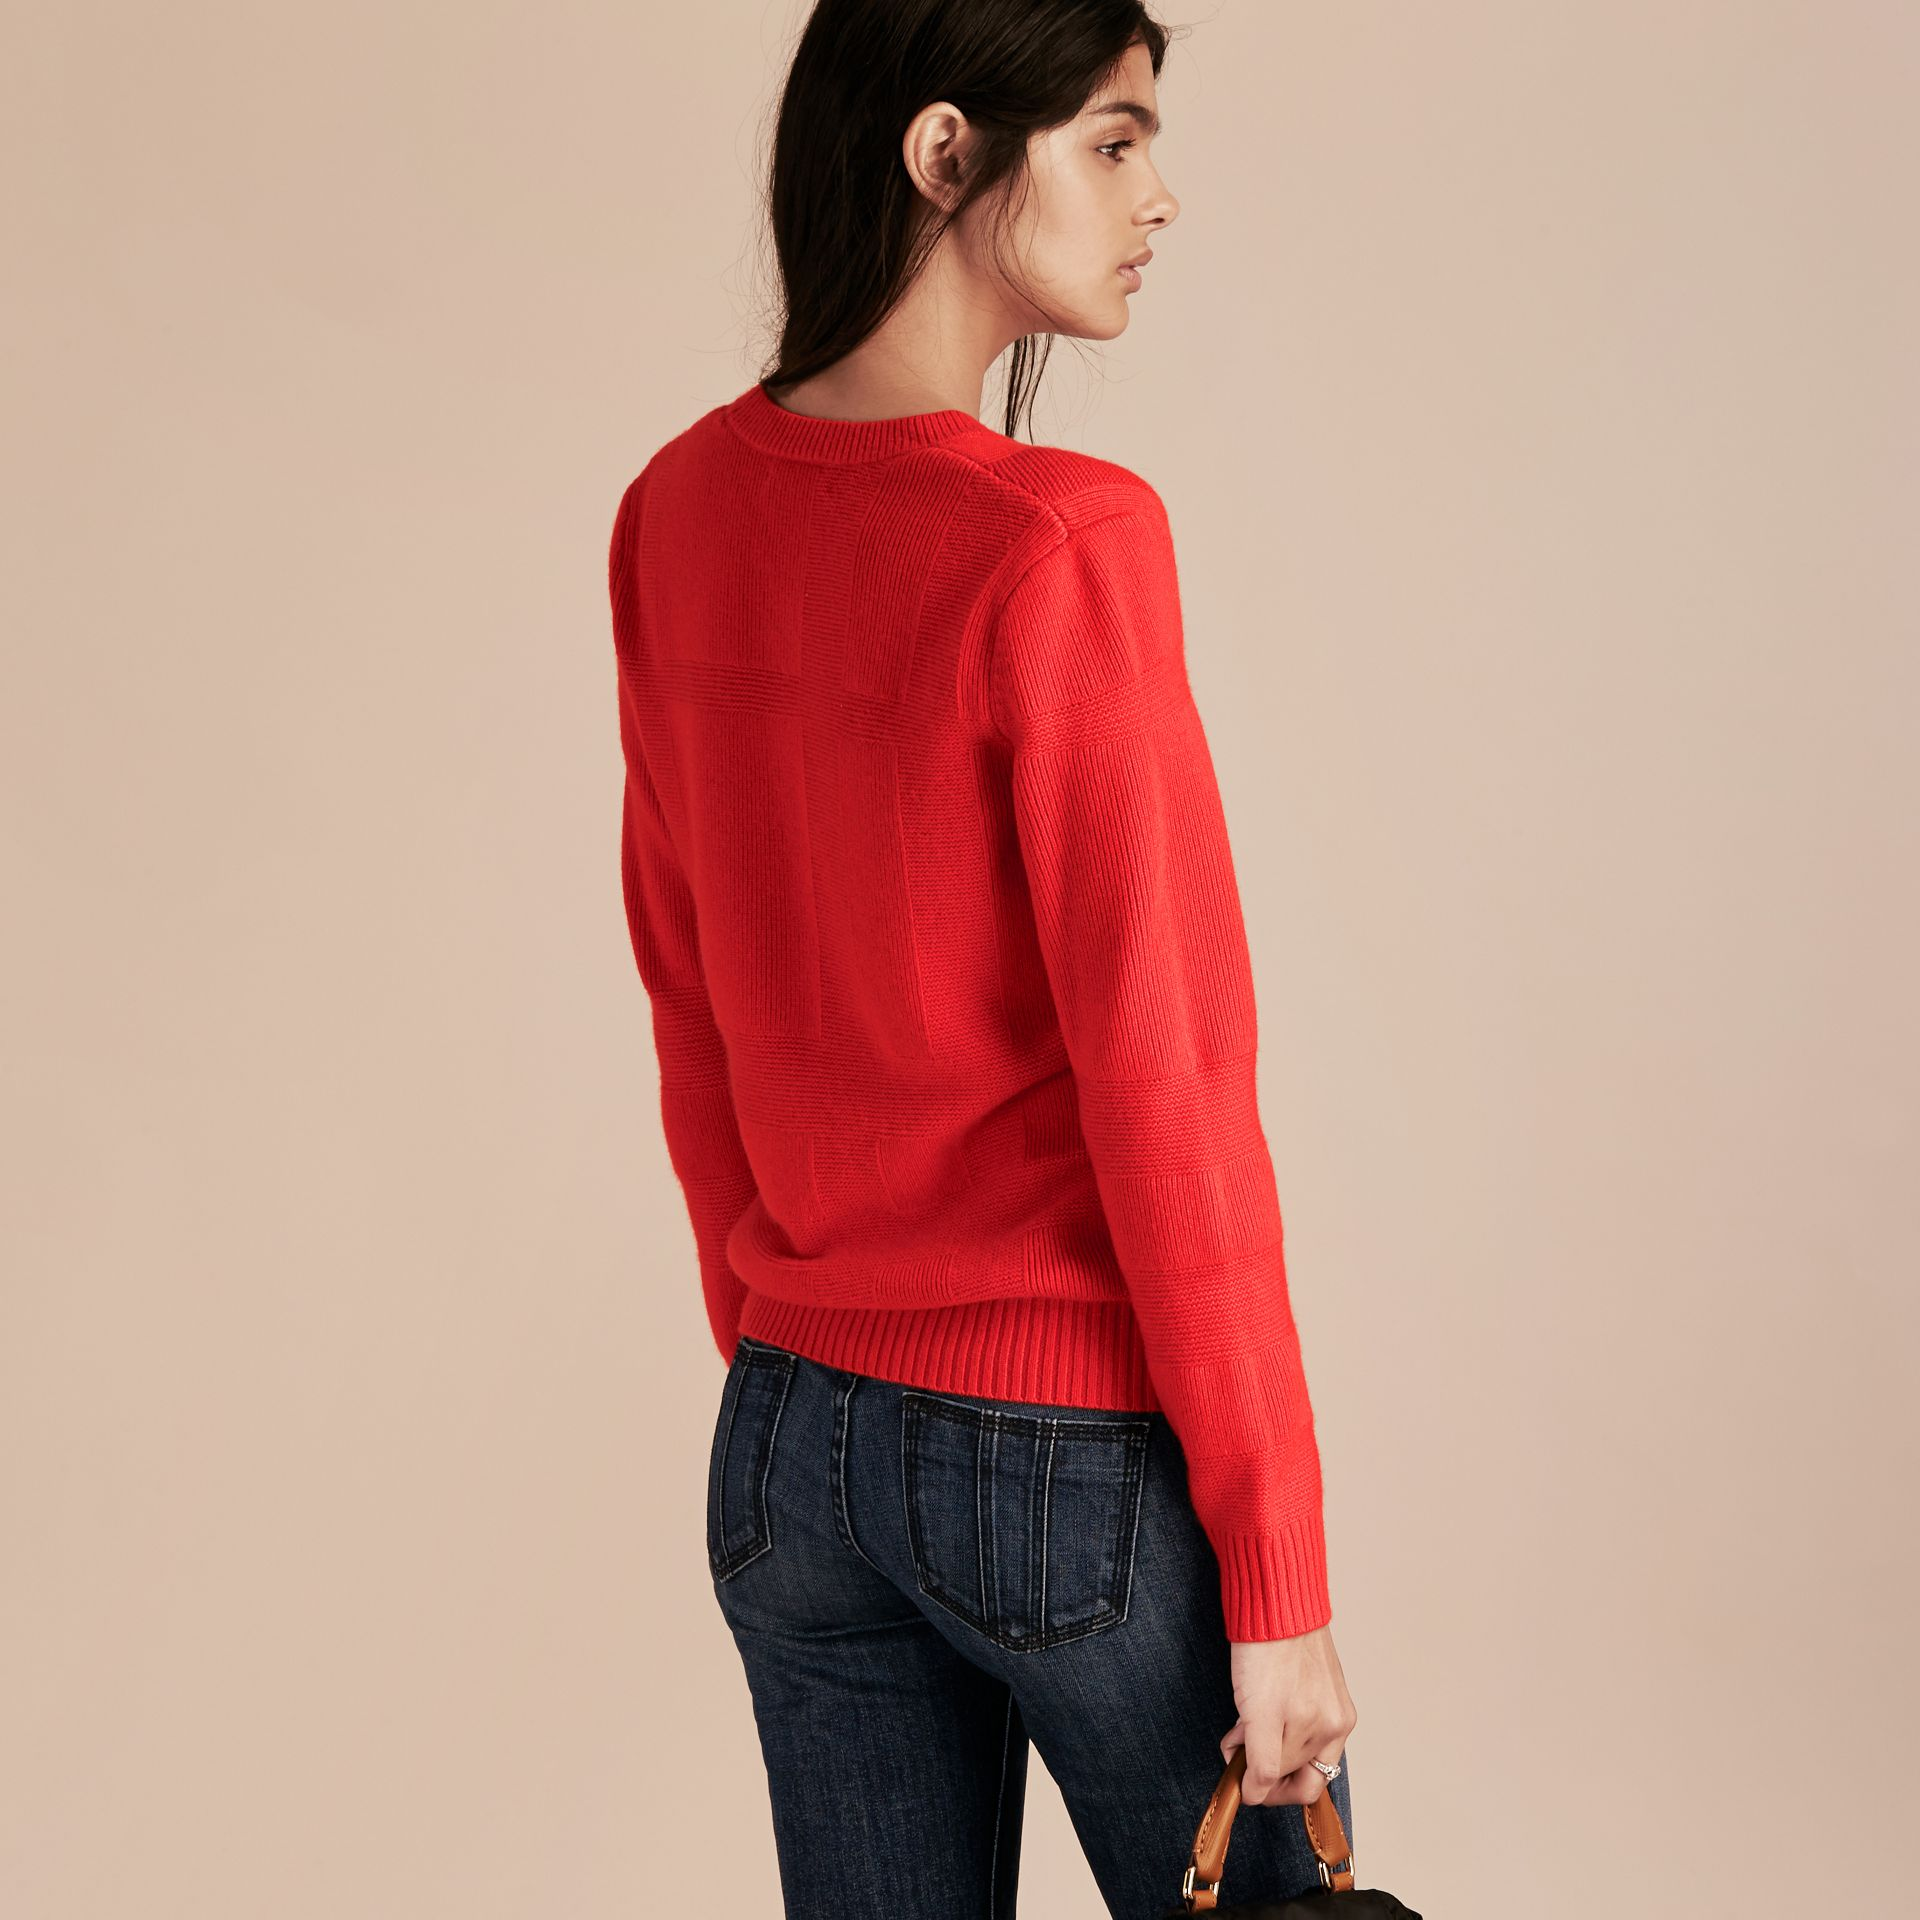 Bright military red Check-knit Wool Cashmere Sweater Bright Military Red - gallery image 3